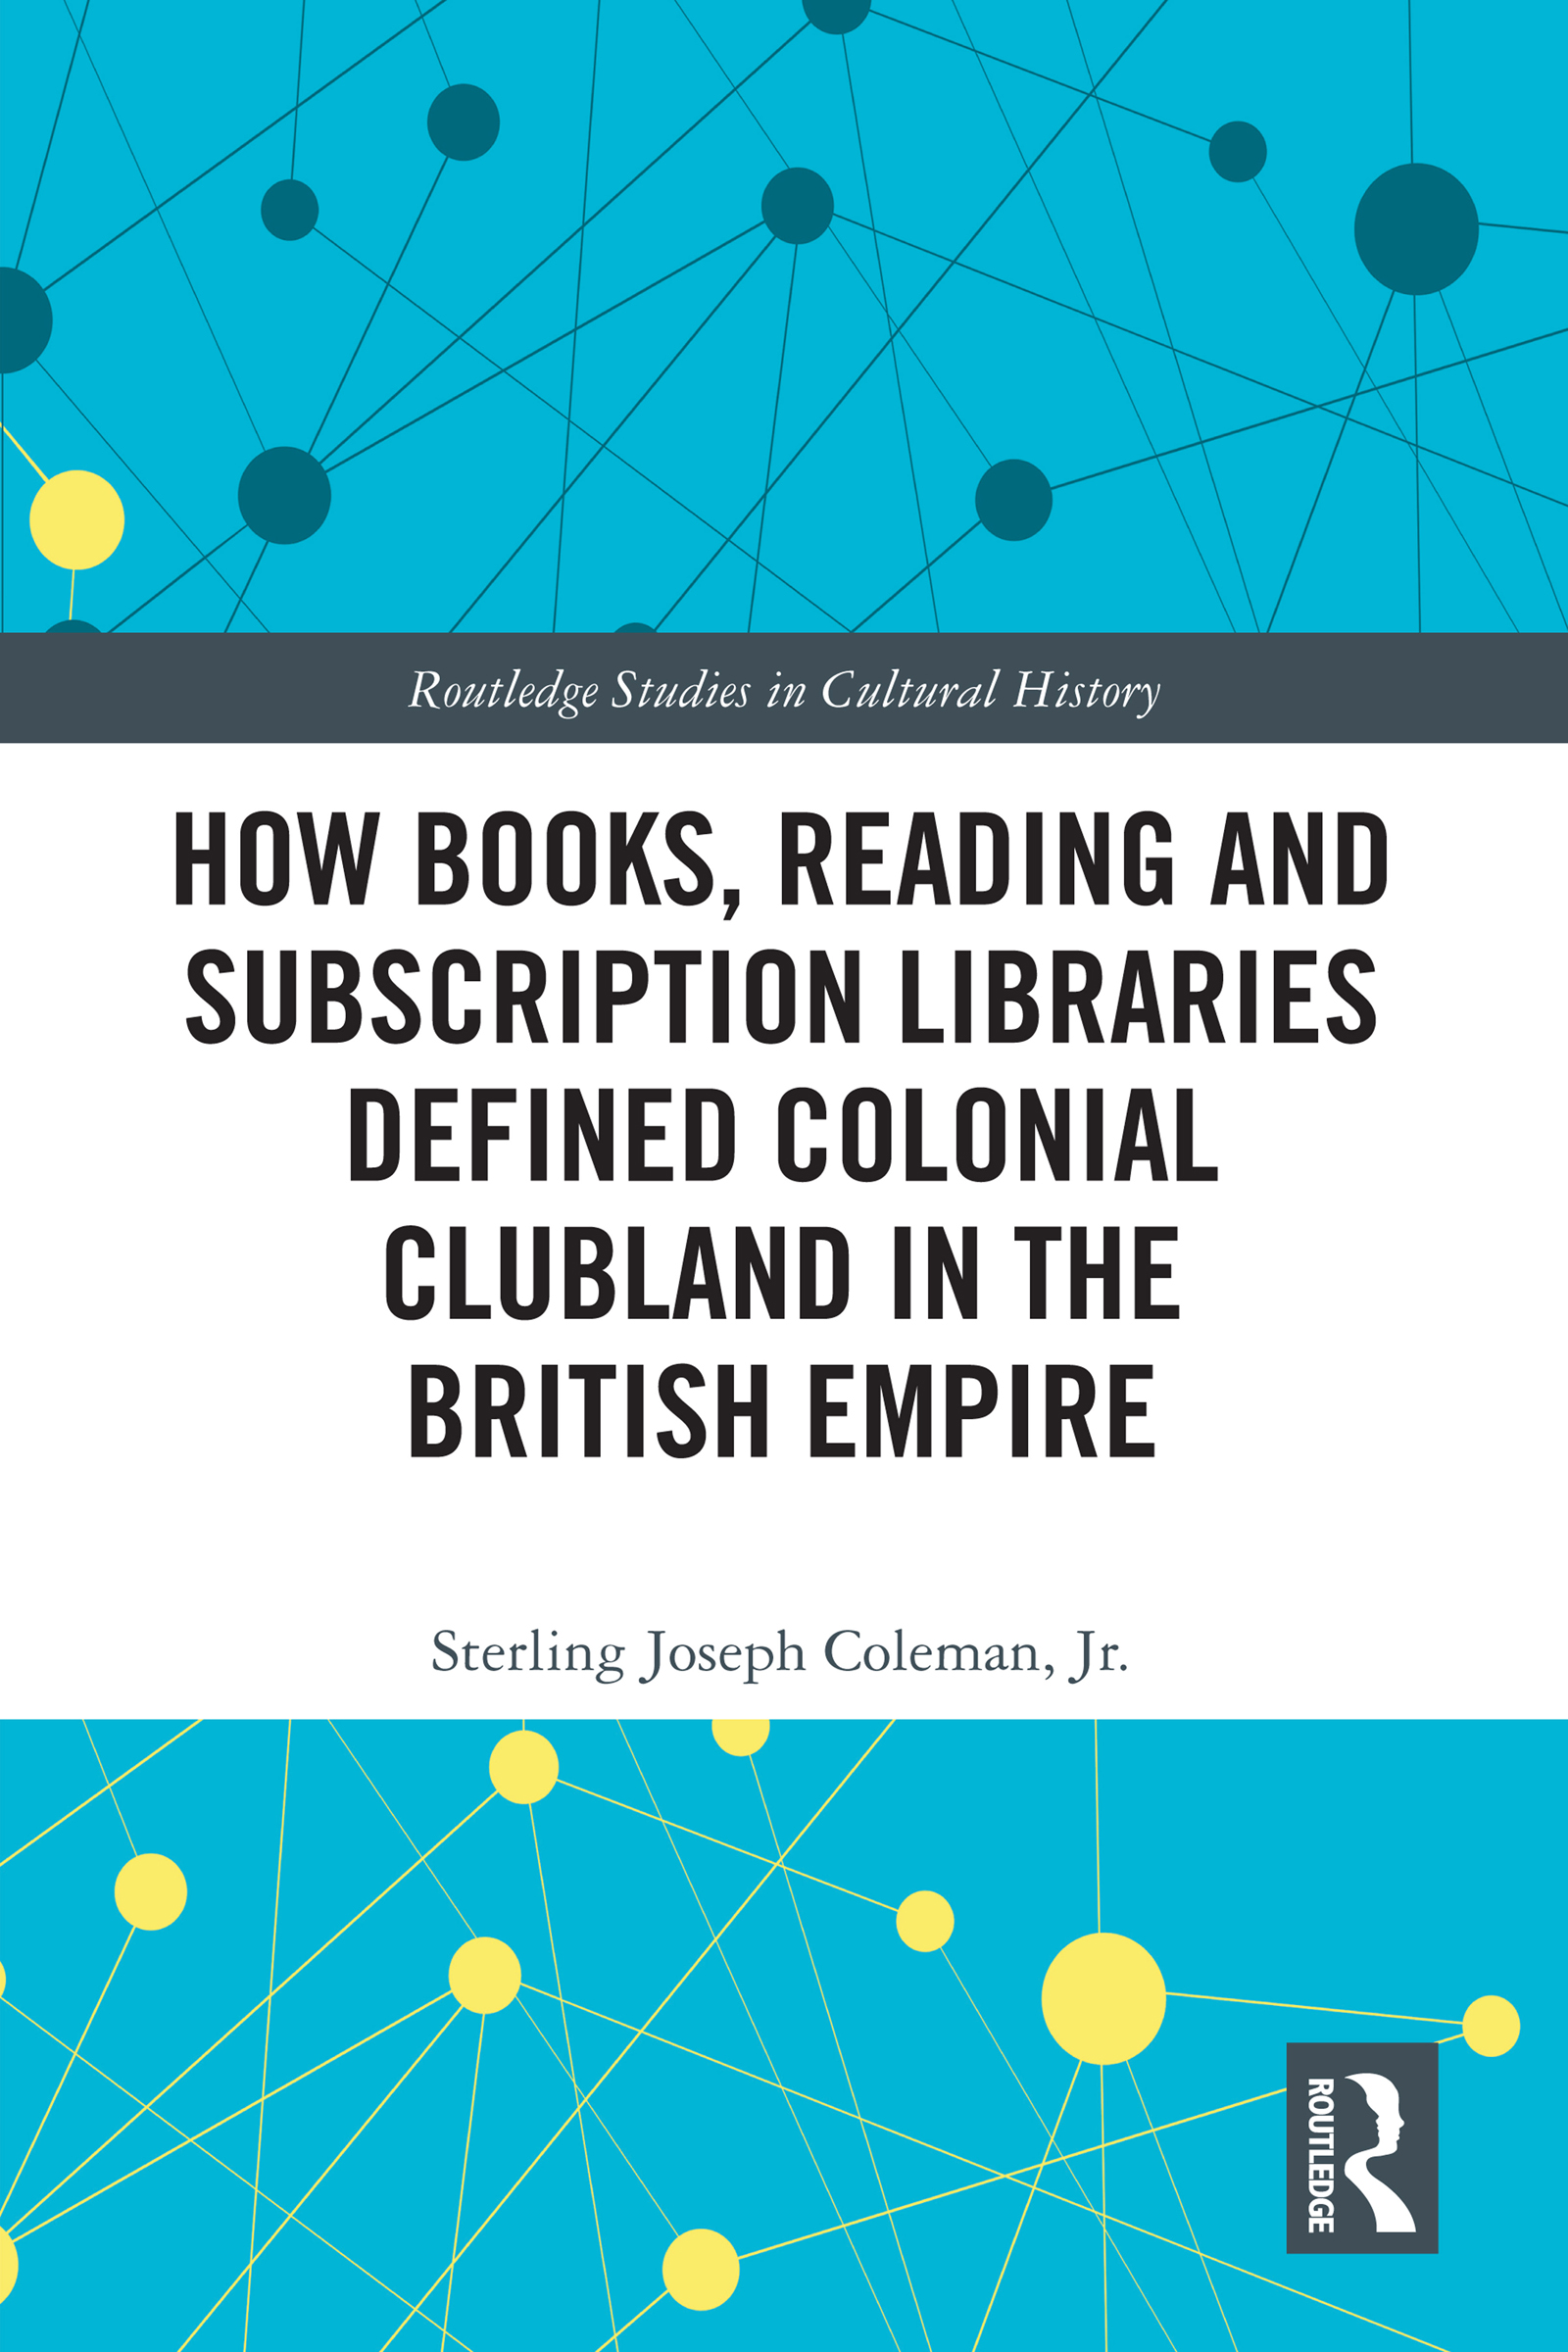 How Books, Reading and Subscription Libraries Defined Colonial Clubland in the British Empire